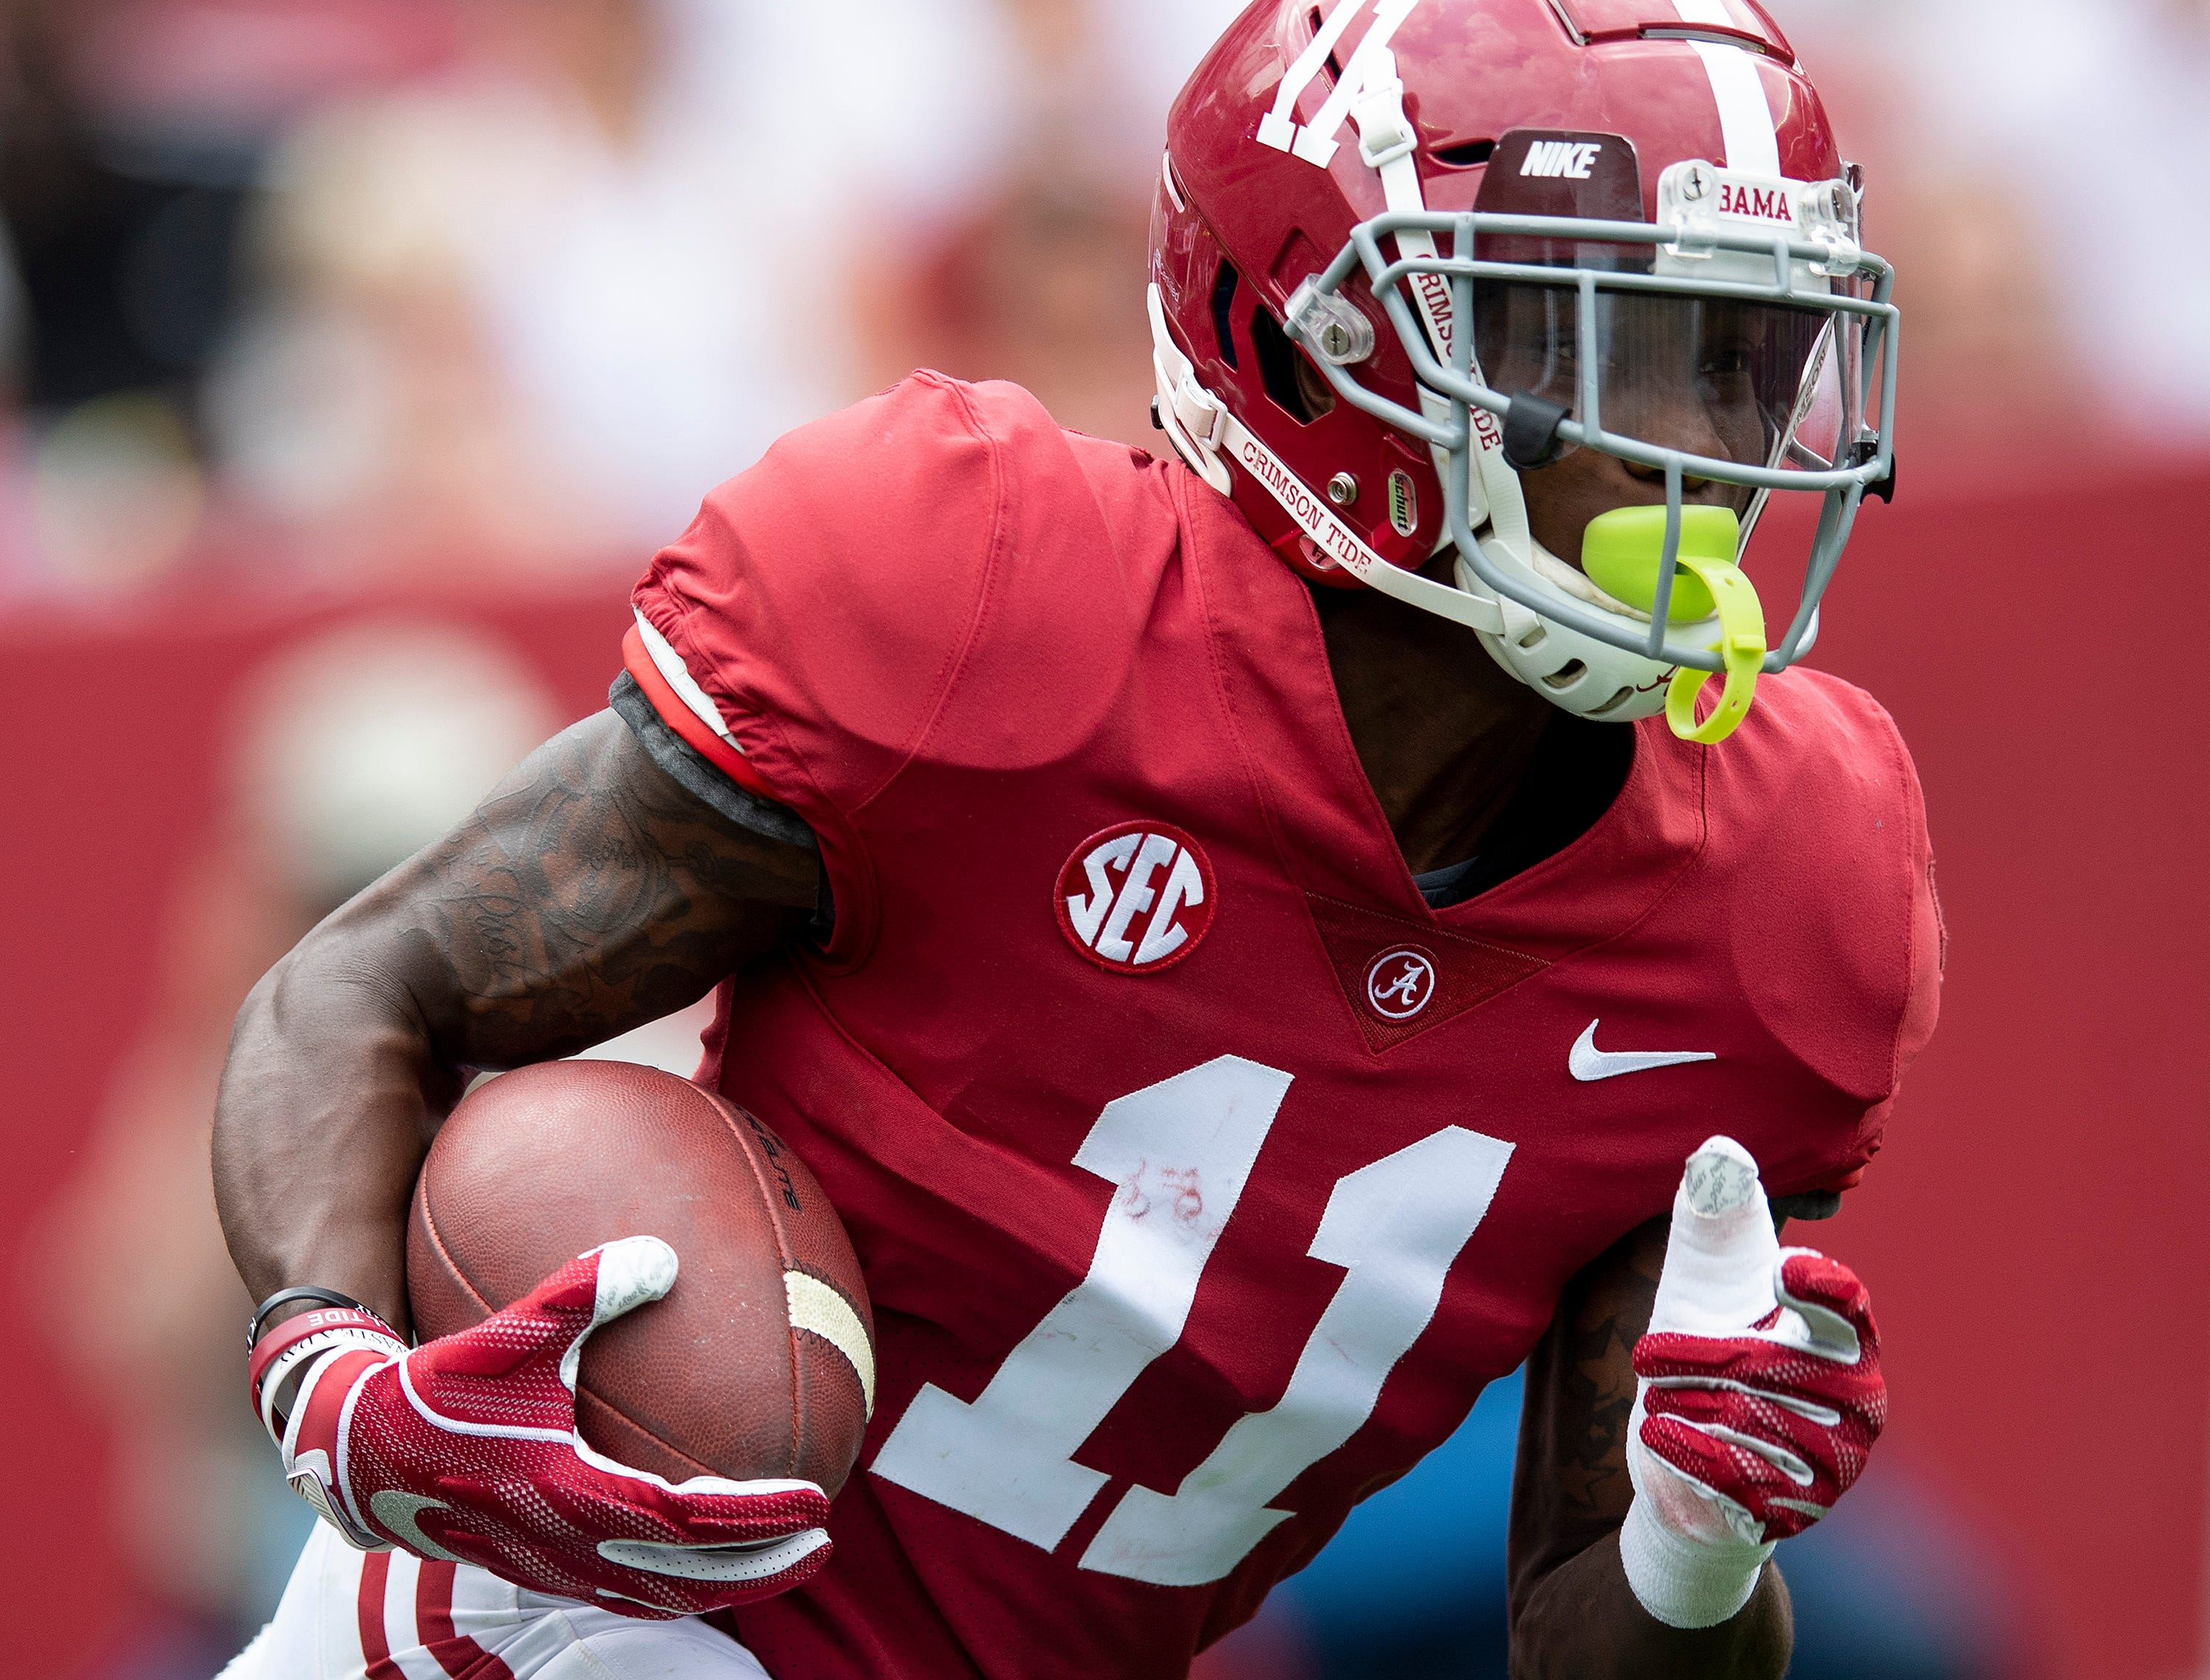 Alabama wide receiver Henry Ruggs, III, (11) returns a kick during first half action in the Alabama A-Day spring football scrimmage game at Bryant Denny Stadium in Tuscaloosa, Ala., on Saturday April 13, 2019.